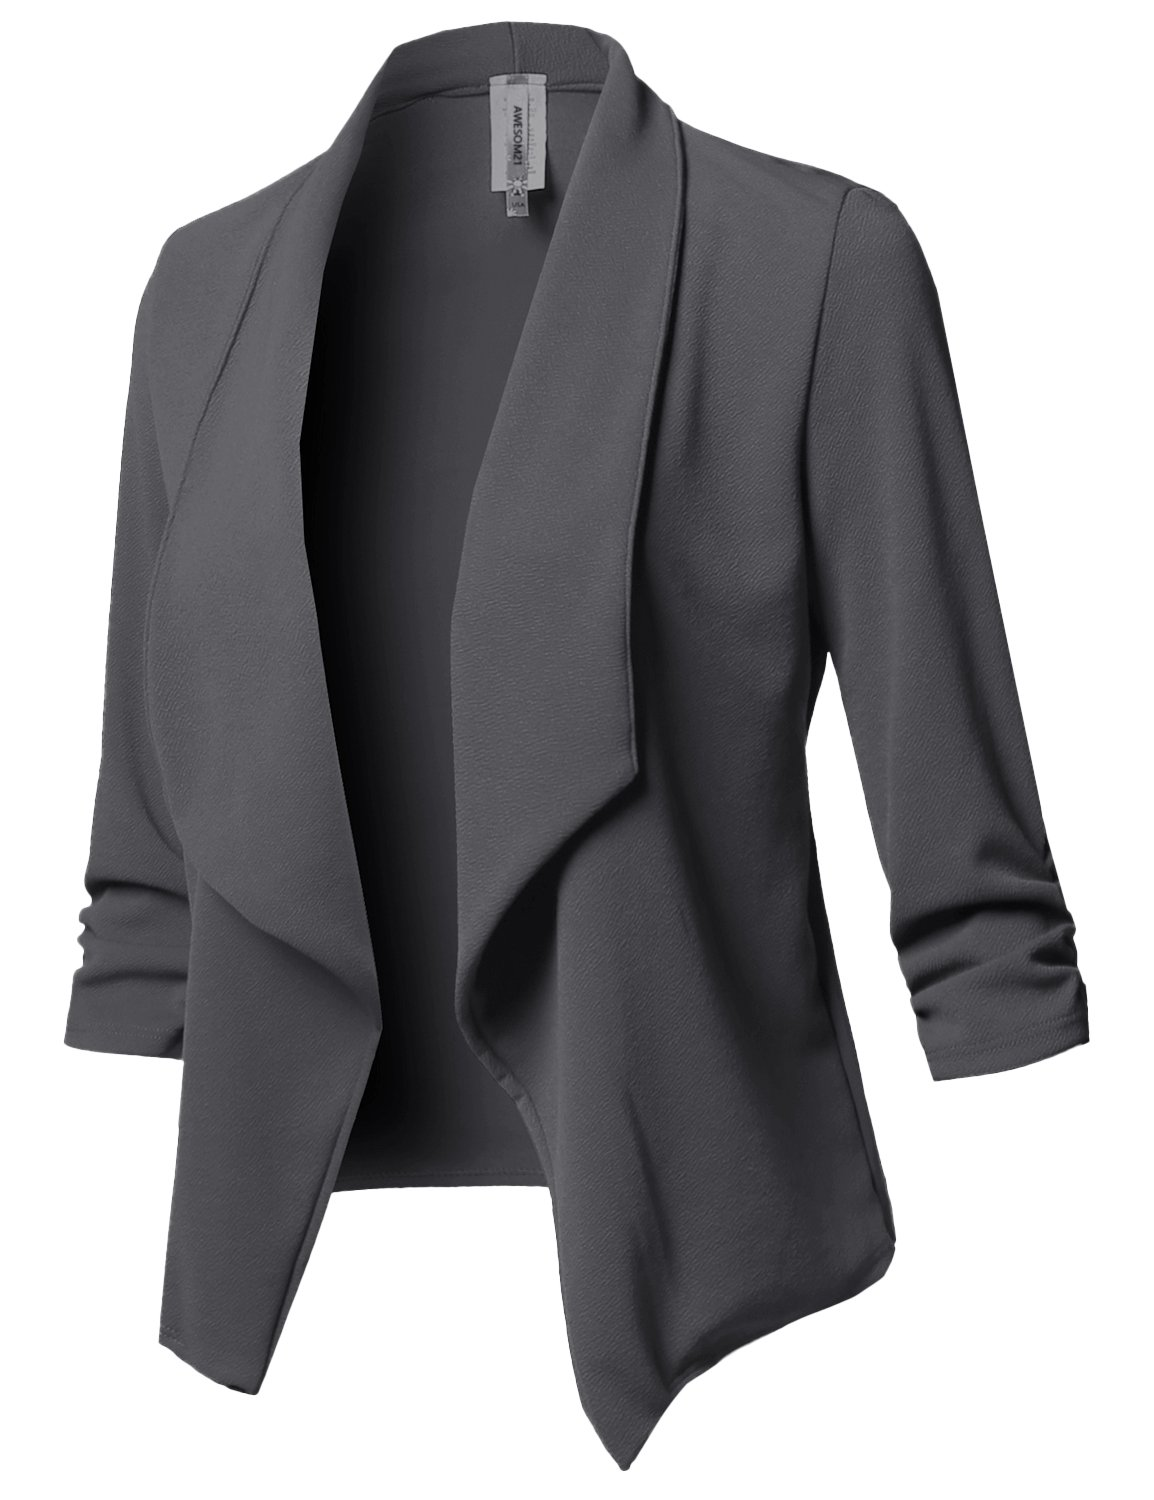 Awesome21 Solid Stretch 3/4 Gathered Sleeve Open Blazer Jacket Charcoal Size 2XL